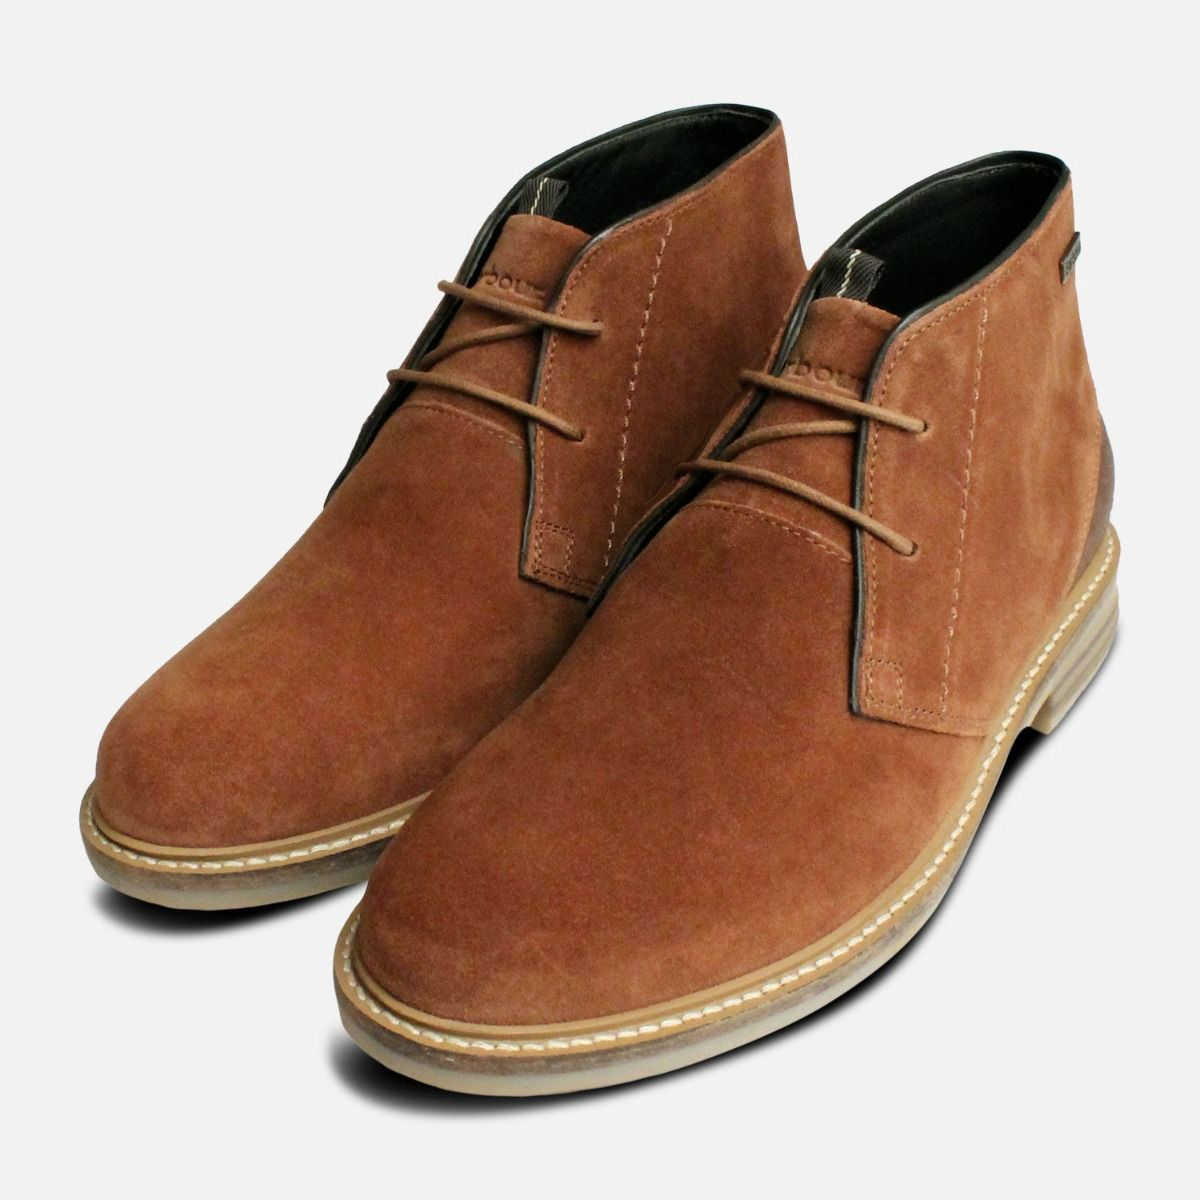 4e8a5c9ed4f Rust Suede Barbour Mens Chukka Boots